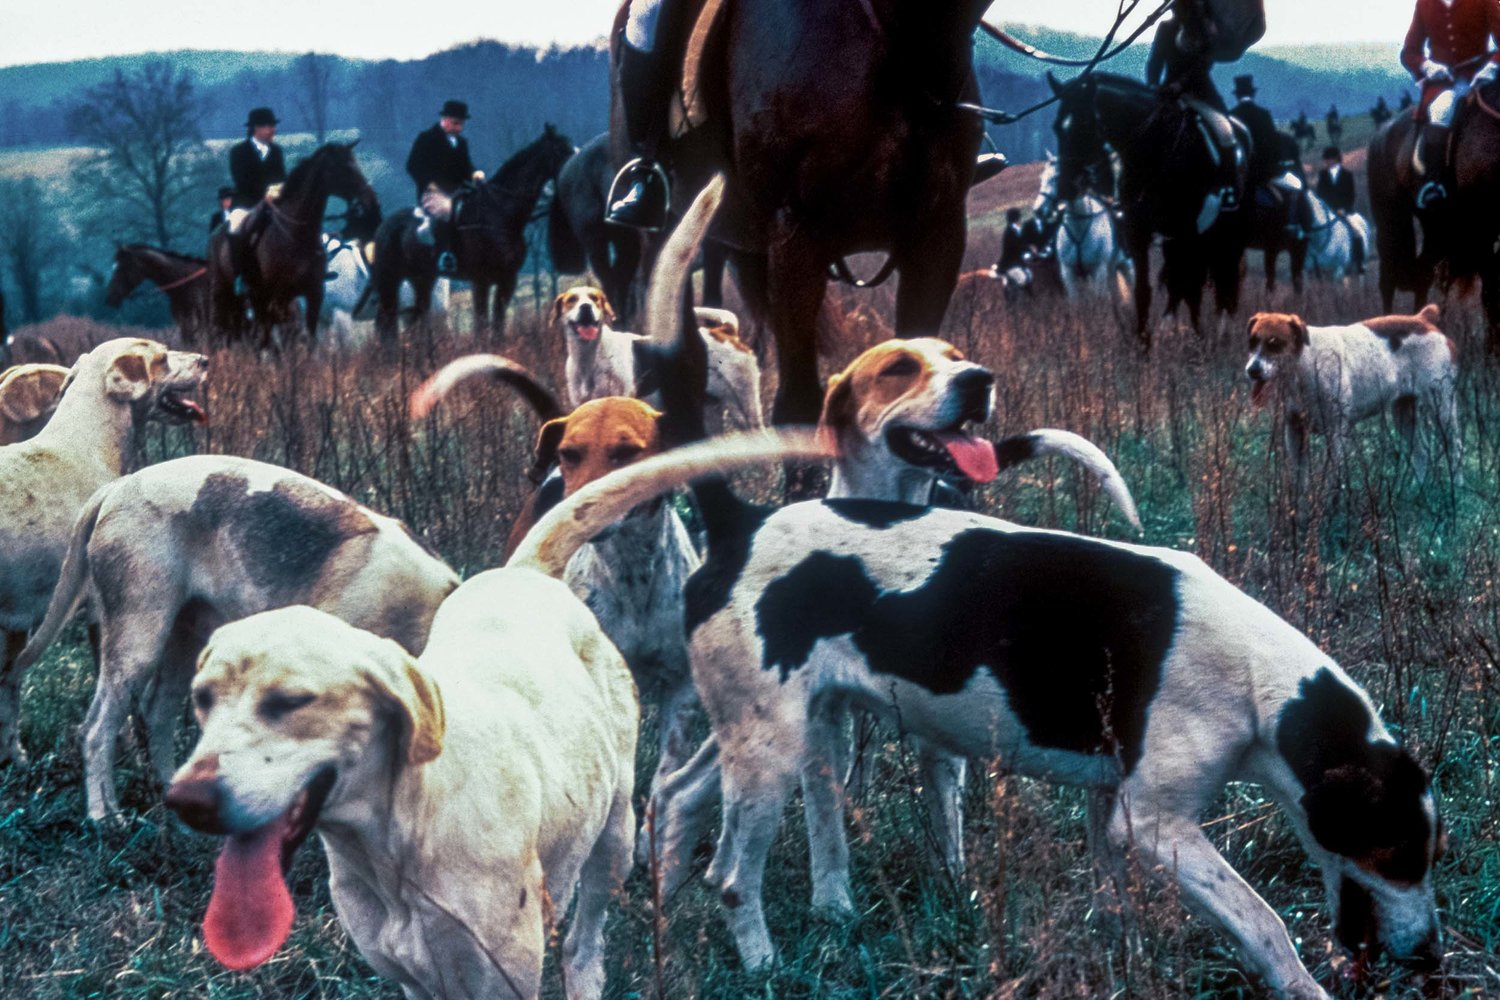 1978-d-0101-geoffrey-biddle-year-1978-fox-hunting-hounds.jpg